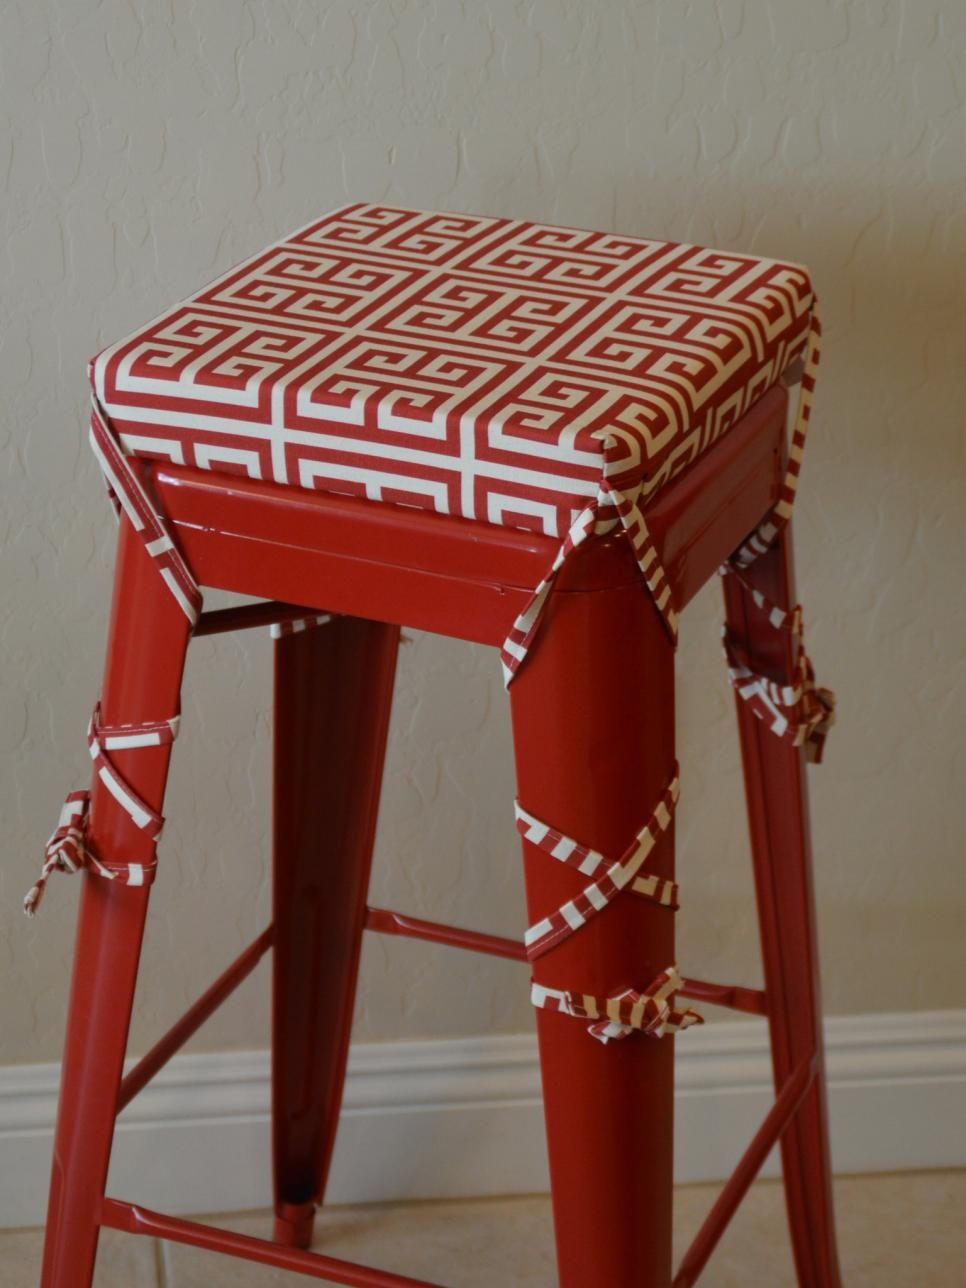 15 Easy Ways To Add Color To Your Kitchen Red Bar Stools Bar Stool Cushions Stool Cushion